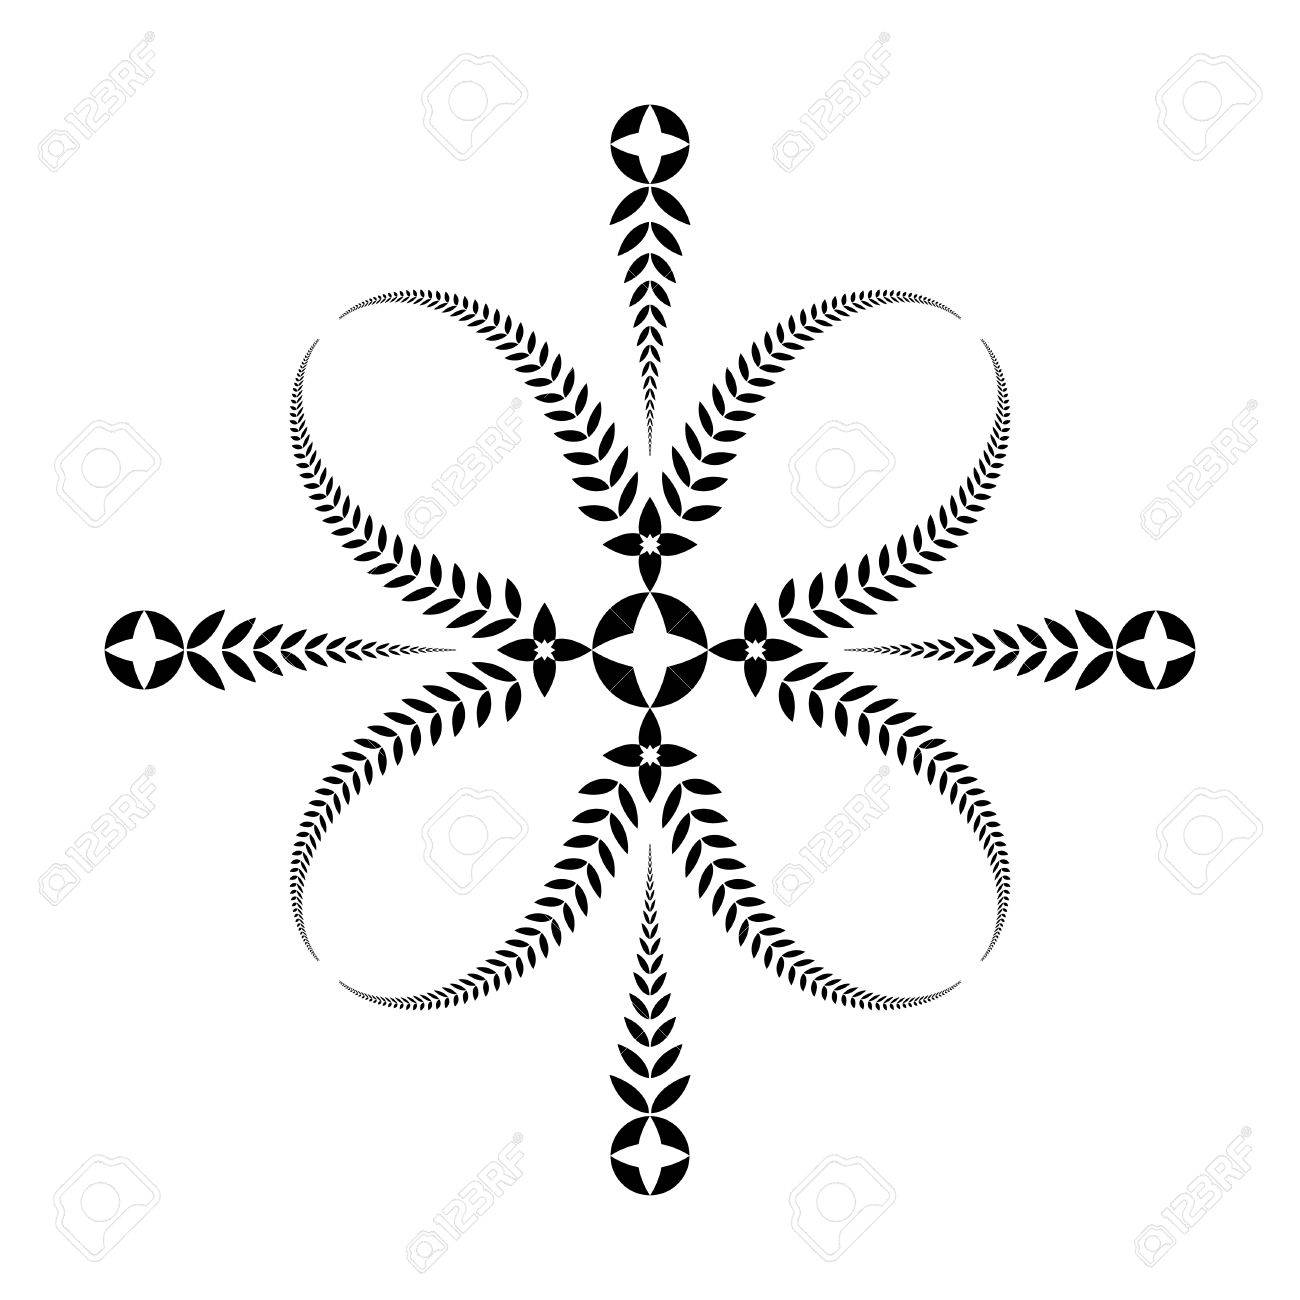 Laurel Wreath Tattoo Cross Stylized Black Ornament Of Leaves Royalty Free Cliparts Vectors And Stock Illustration Image 67662984